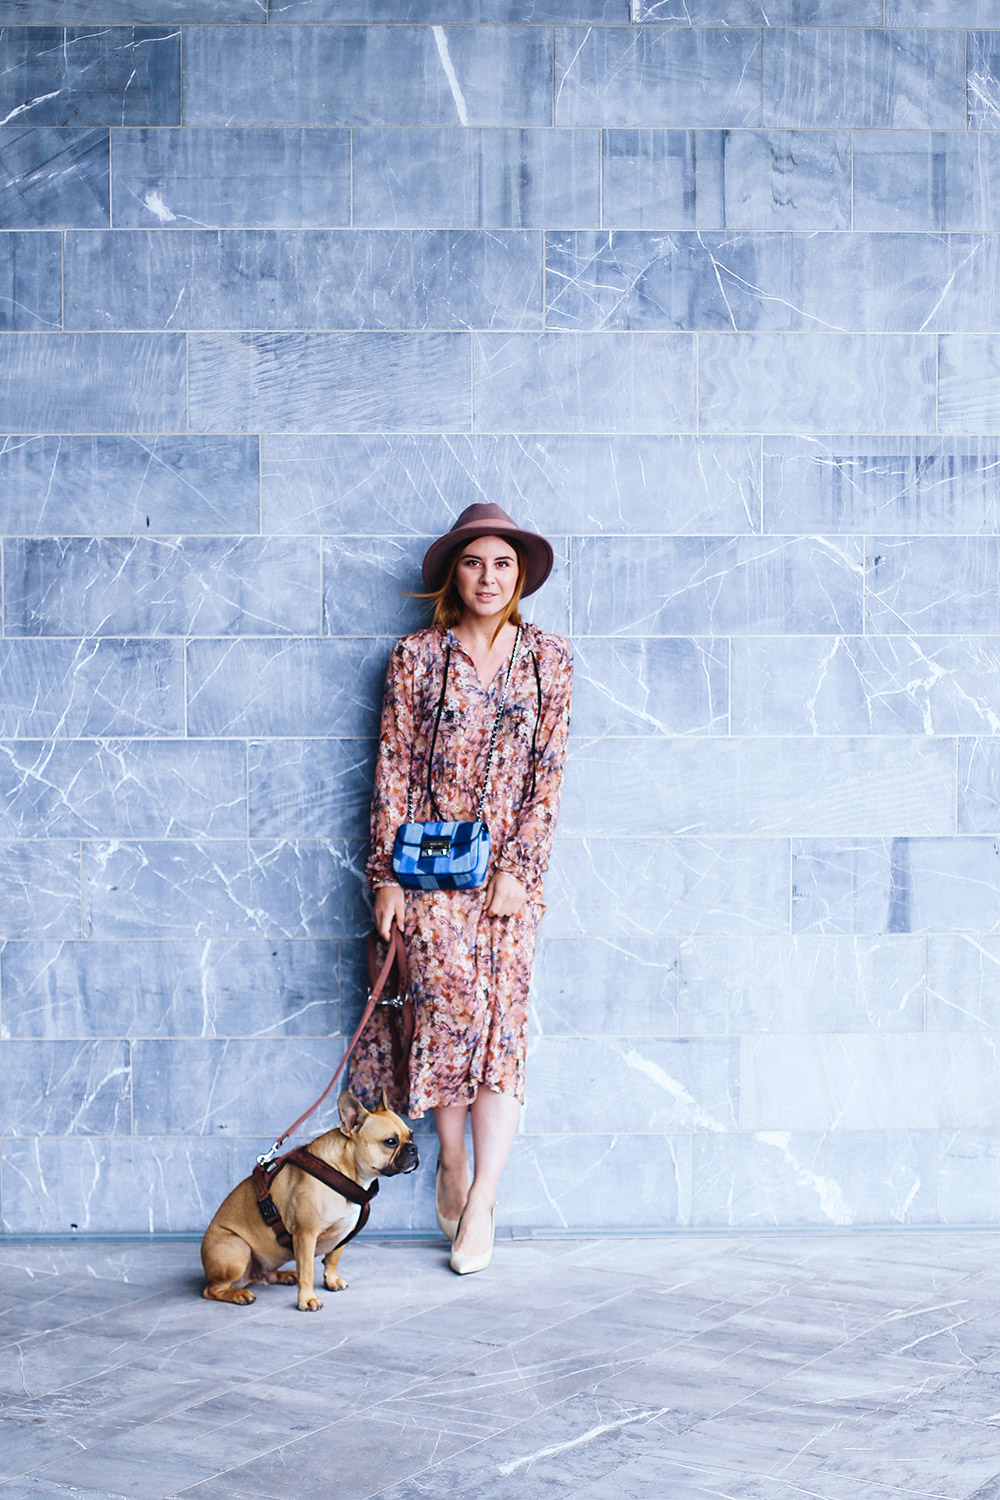 Sommer Midikleid mit Blumen, Denim Tasche, Michael Kors Sloan Cross Body Bag, Nude Pumps, Fedora rosa, Fashion Blog, Modeblog, whoismocca.com